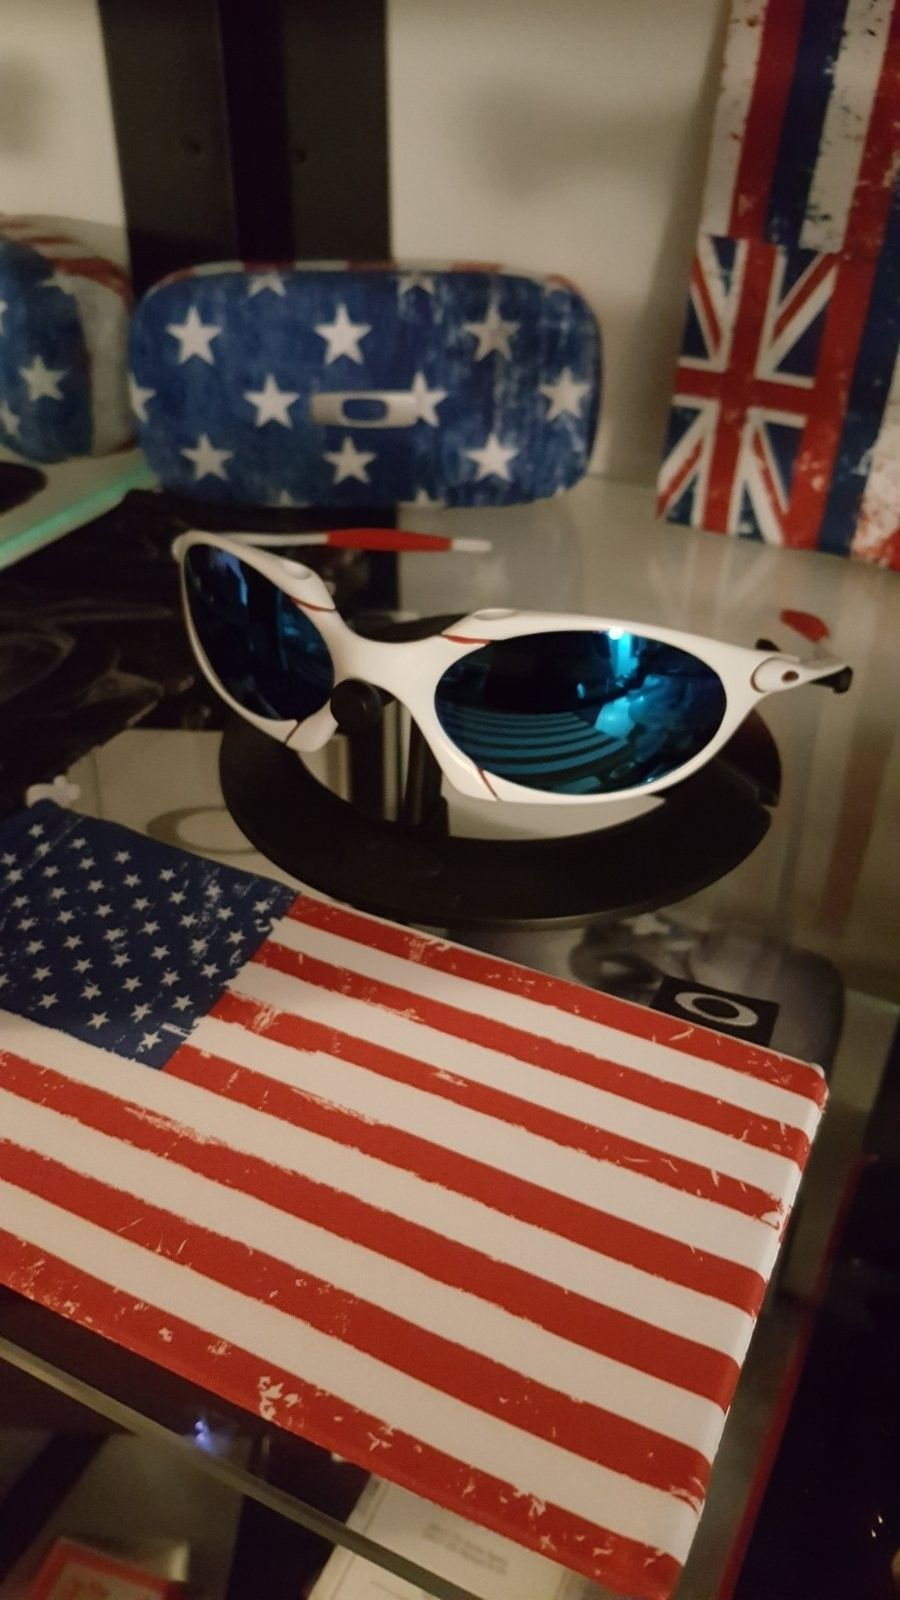 Let's see your Independence Day tribute! Happy 4th of July! - 20160704_000925.jpg